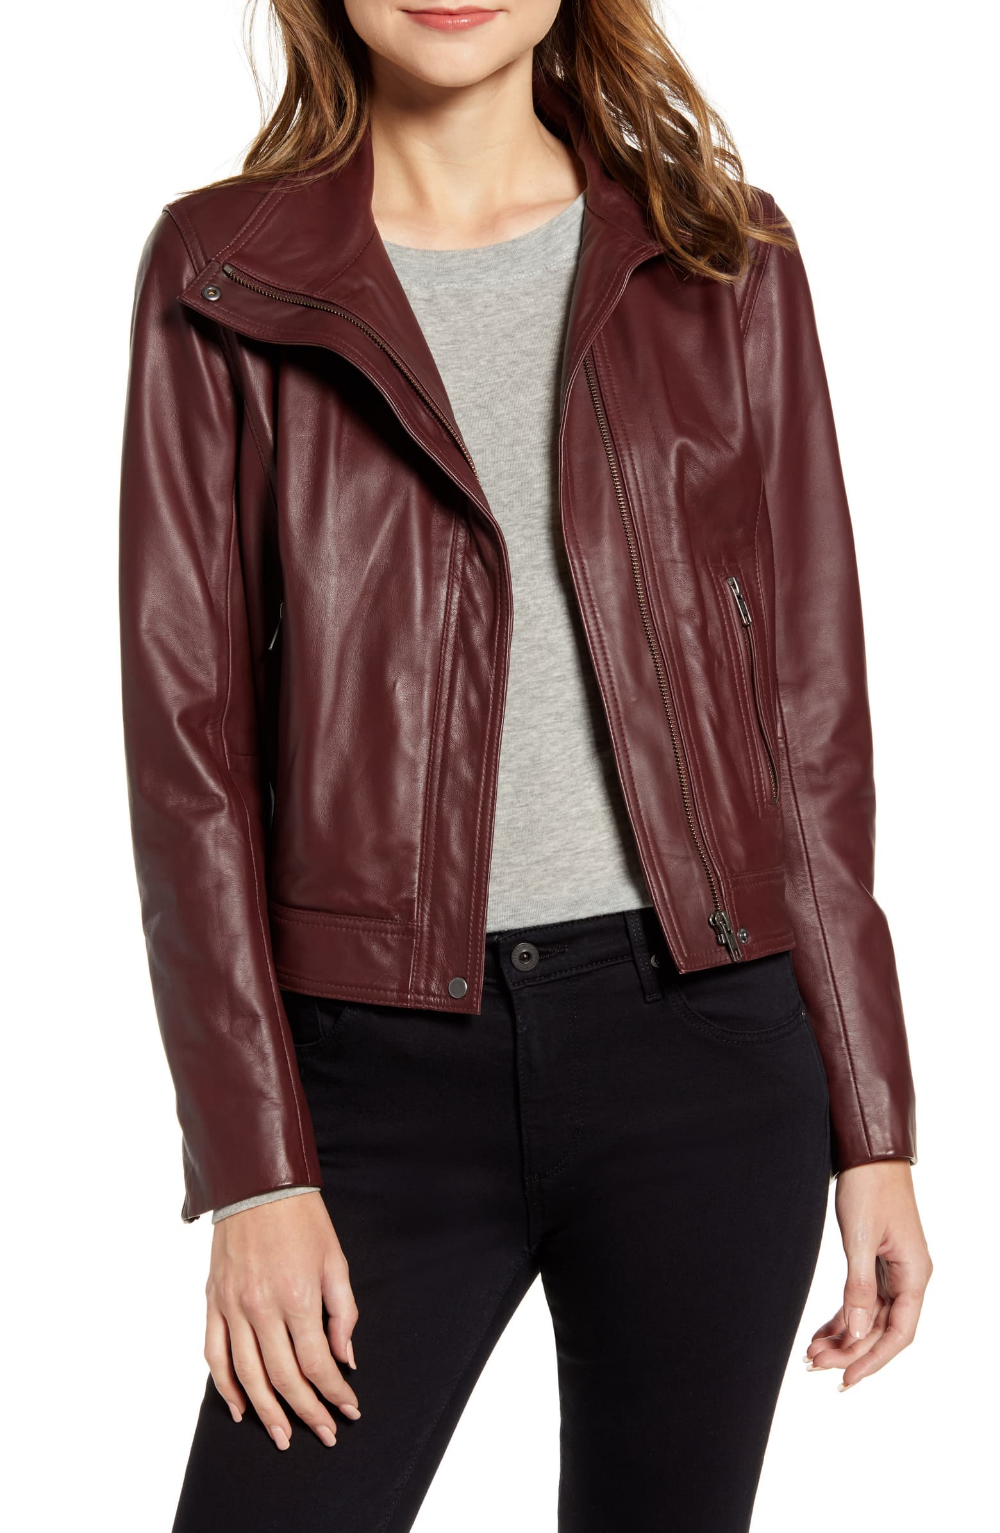 Chelsea 28 Leather Moto Jacket Nordstrom Leather Moto Jacket Fashion Clothes Women Moto Jacket [ 1533 x 1000 Pixel ]